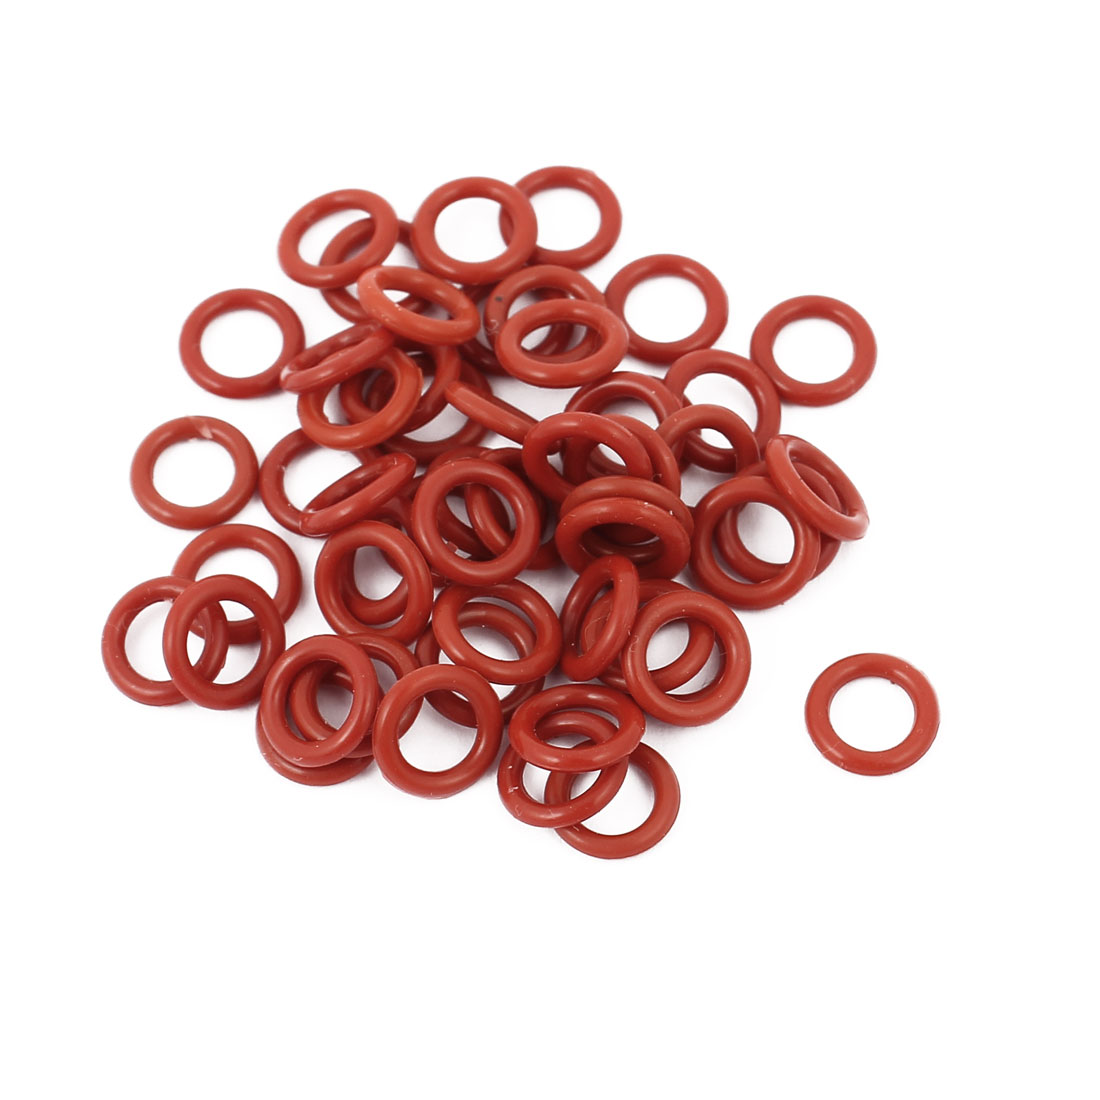 50pcs 1.5mm Thick Heat Oil Resistant Mini O-Ring Rubber Sealing Ring 8mm OD Red